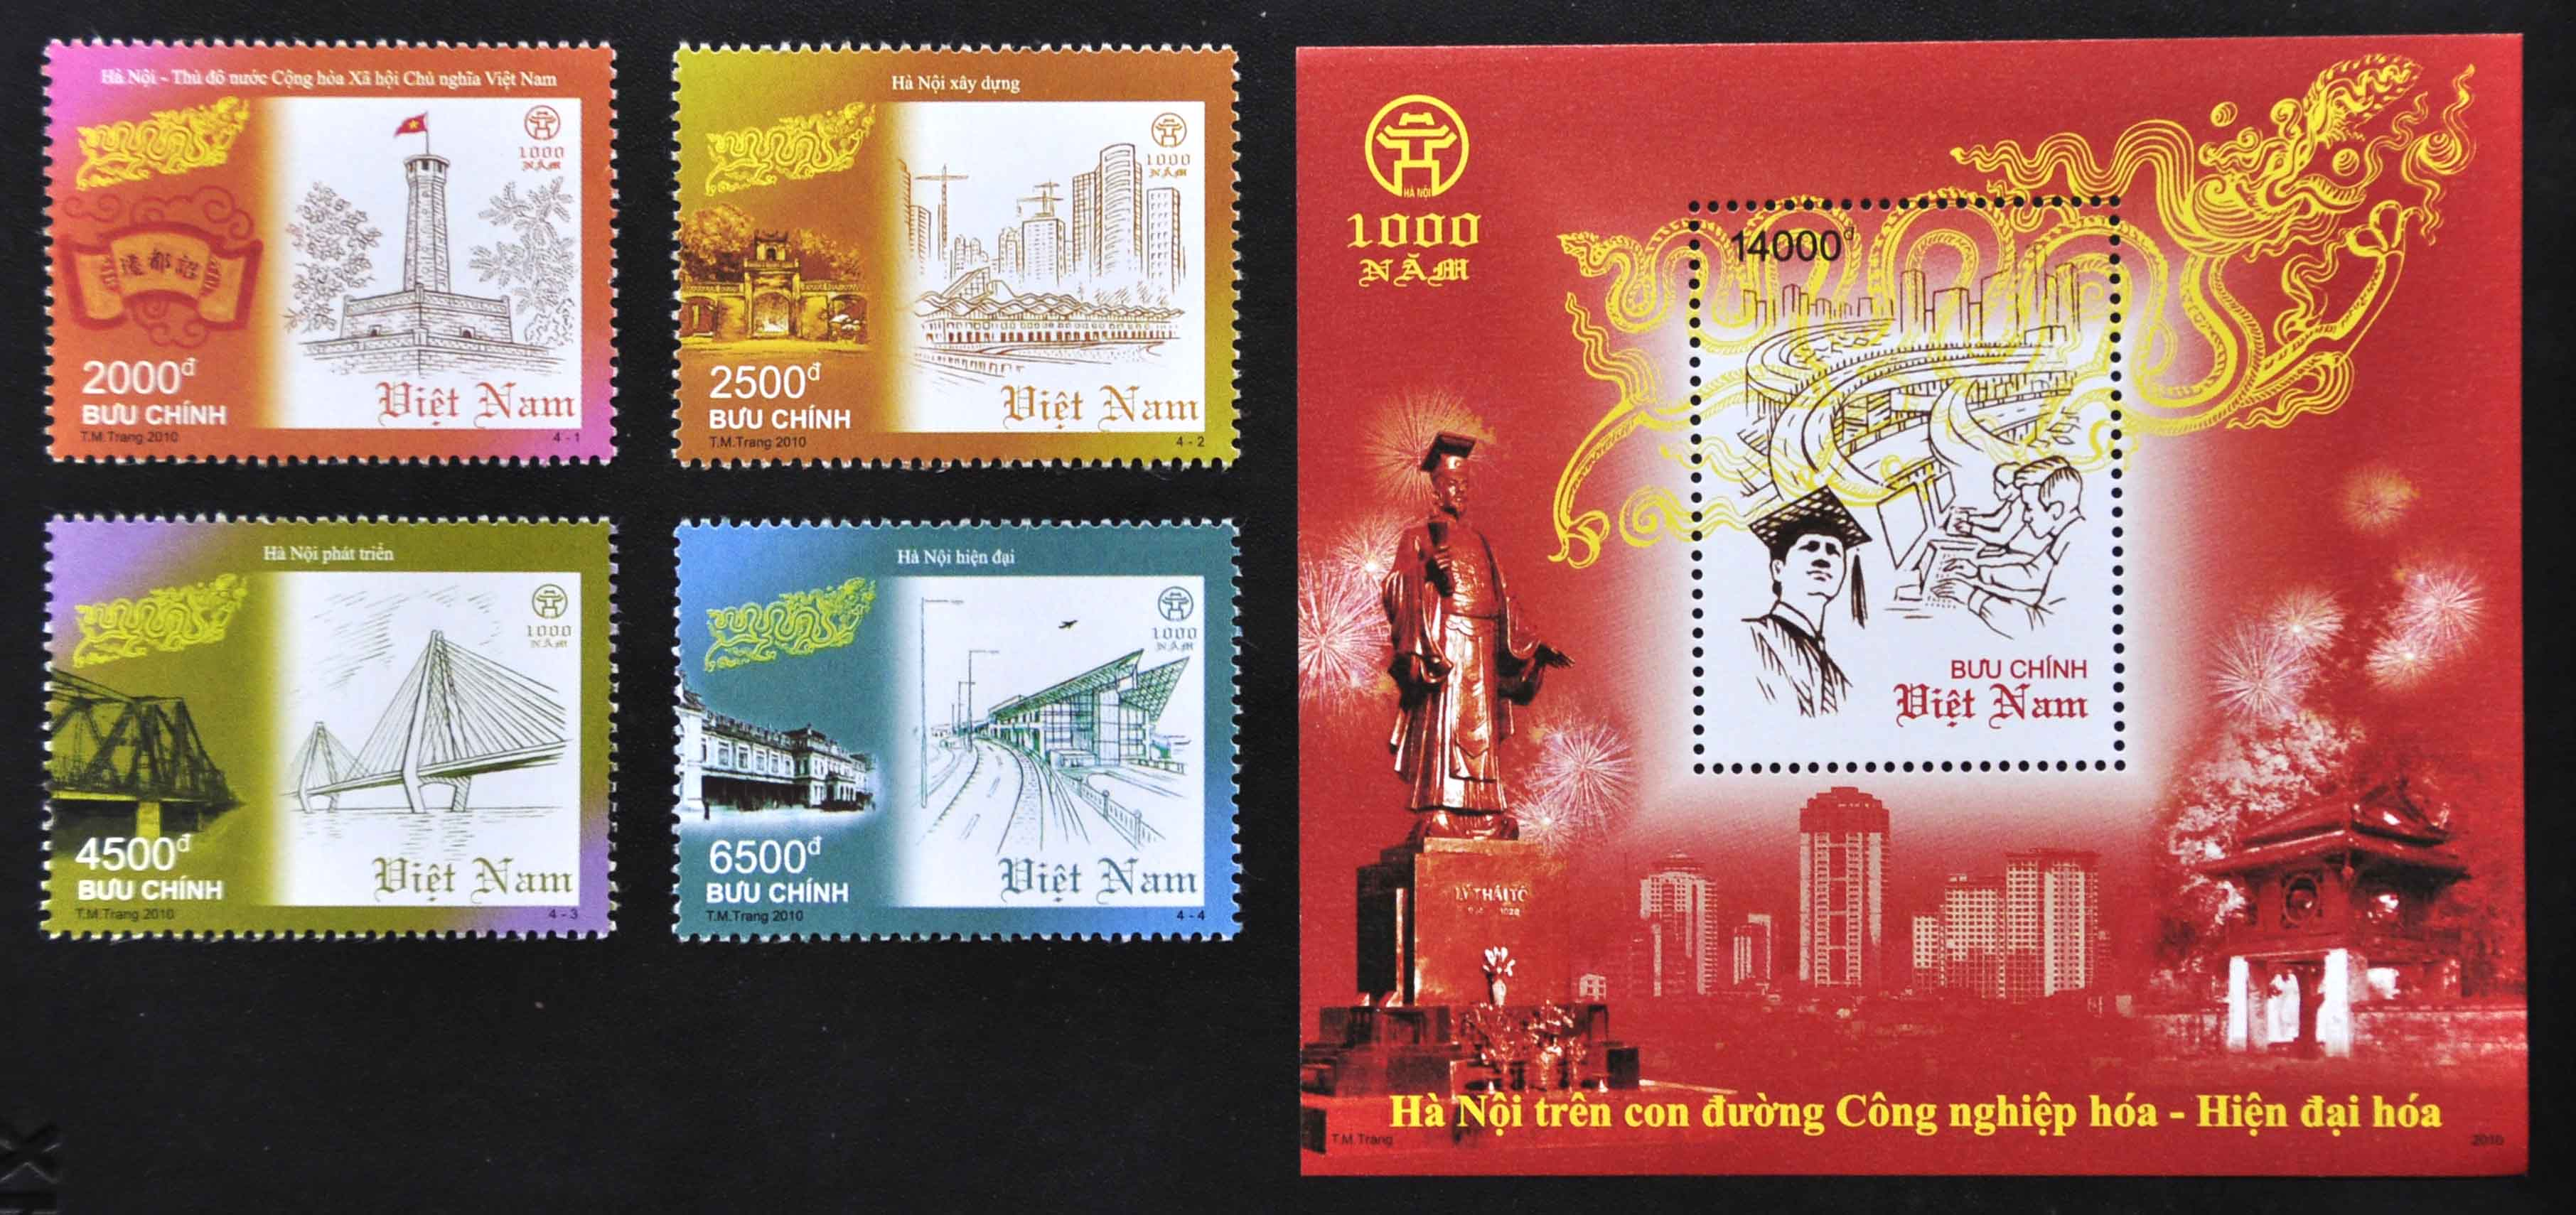 stamp collecting hobby in vietnam hinh 0